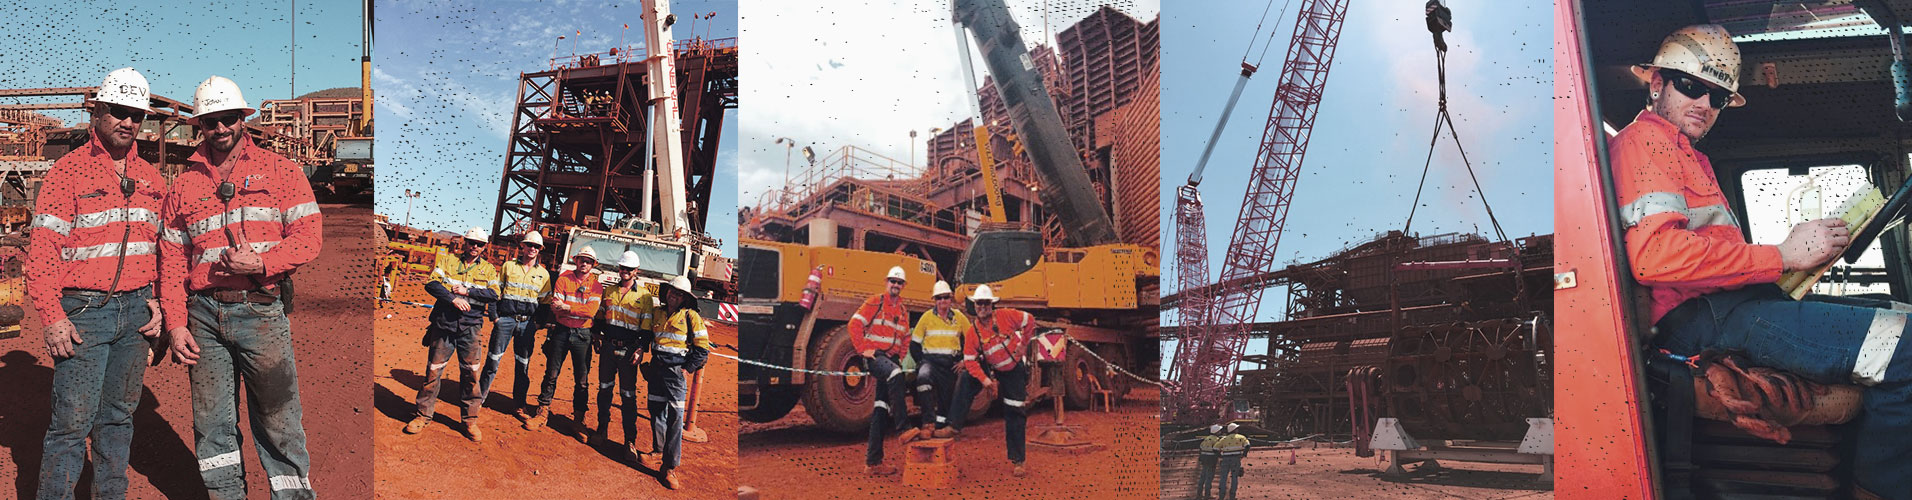 Mining Trade Assistants Boilermakers Fitters Riggers Coalfields-iMINCO.net Mining Information